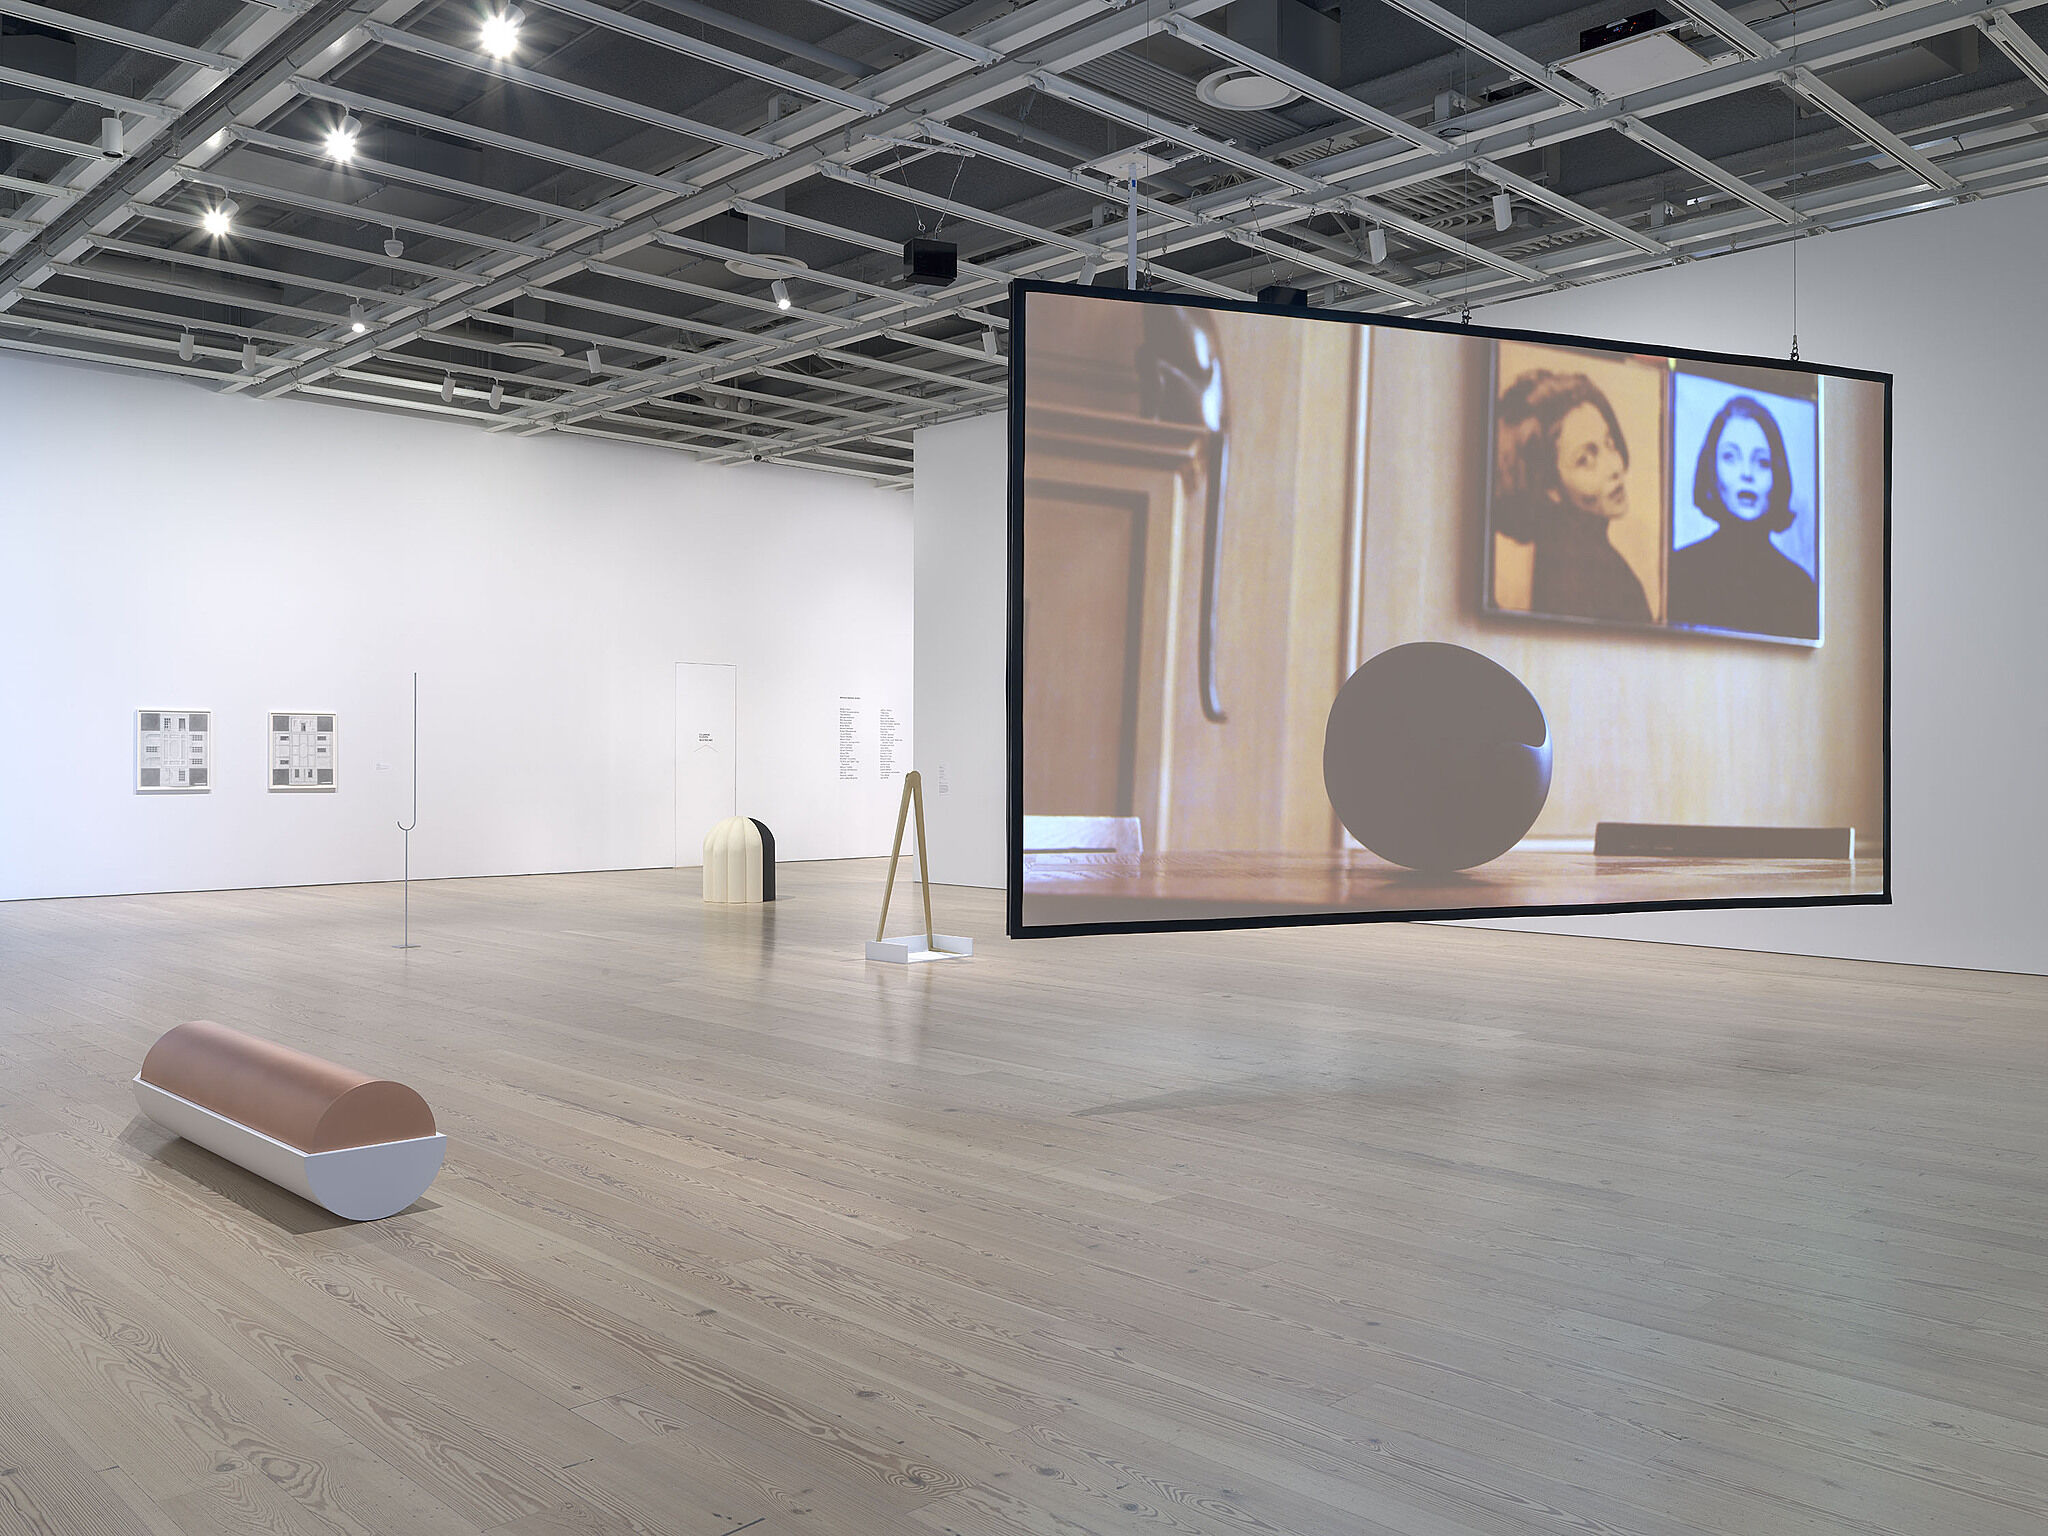 An installation view of artworks in a gallery.